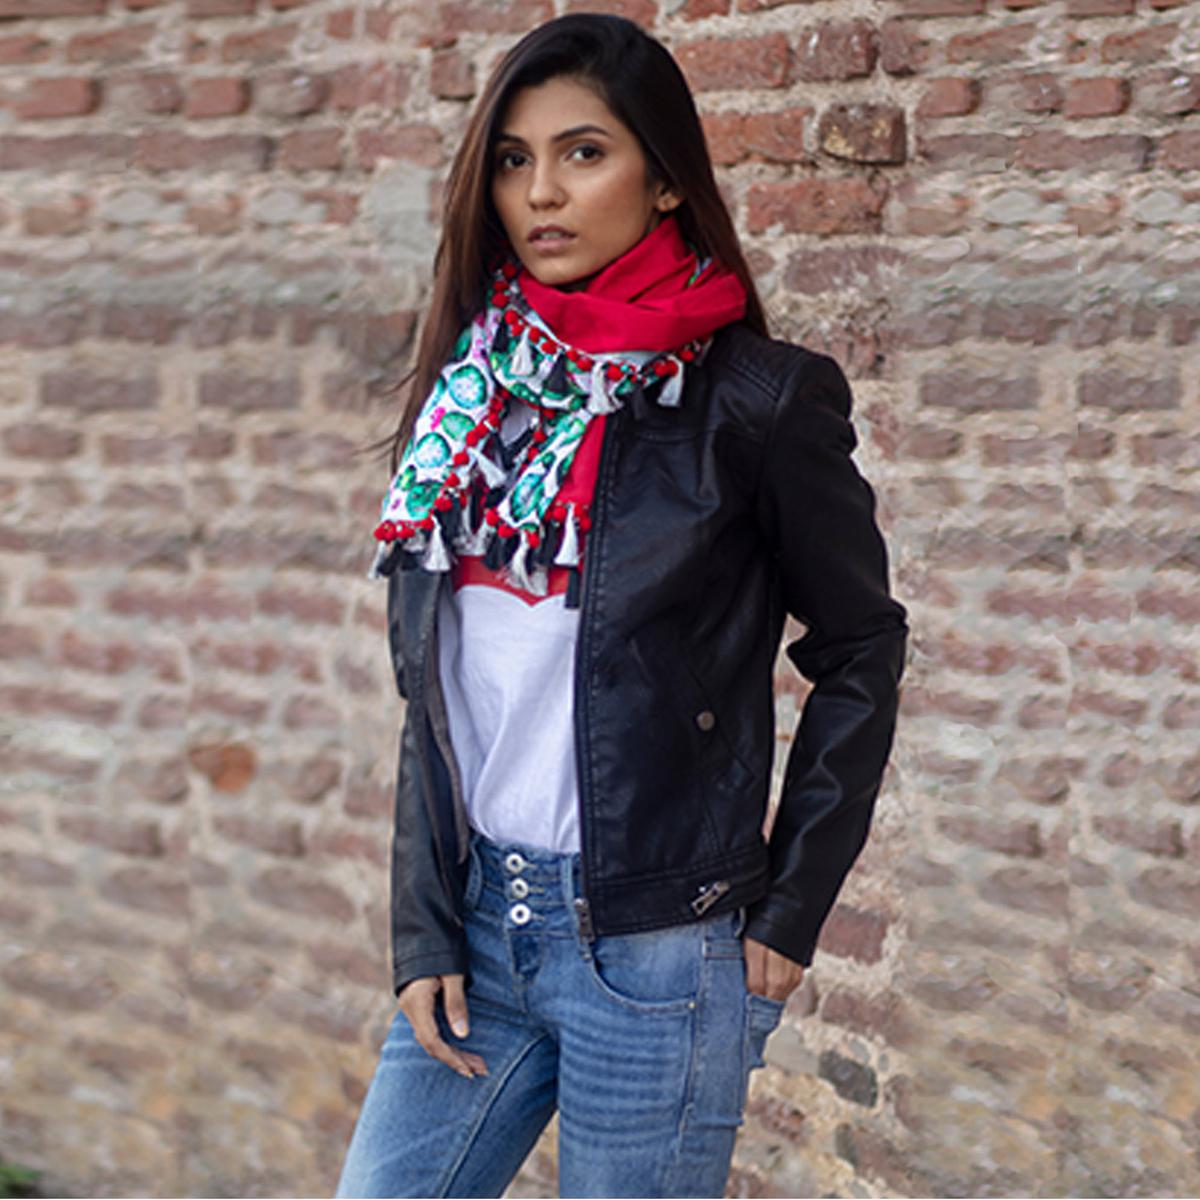 Prominent Red-Multi Colored Printed Khadi Cotton Stole